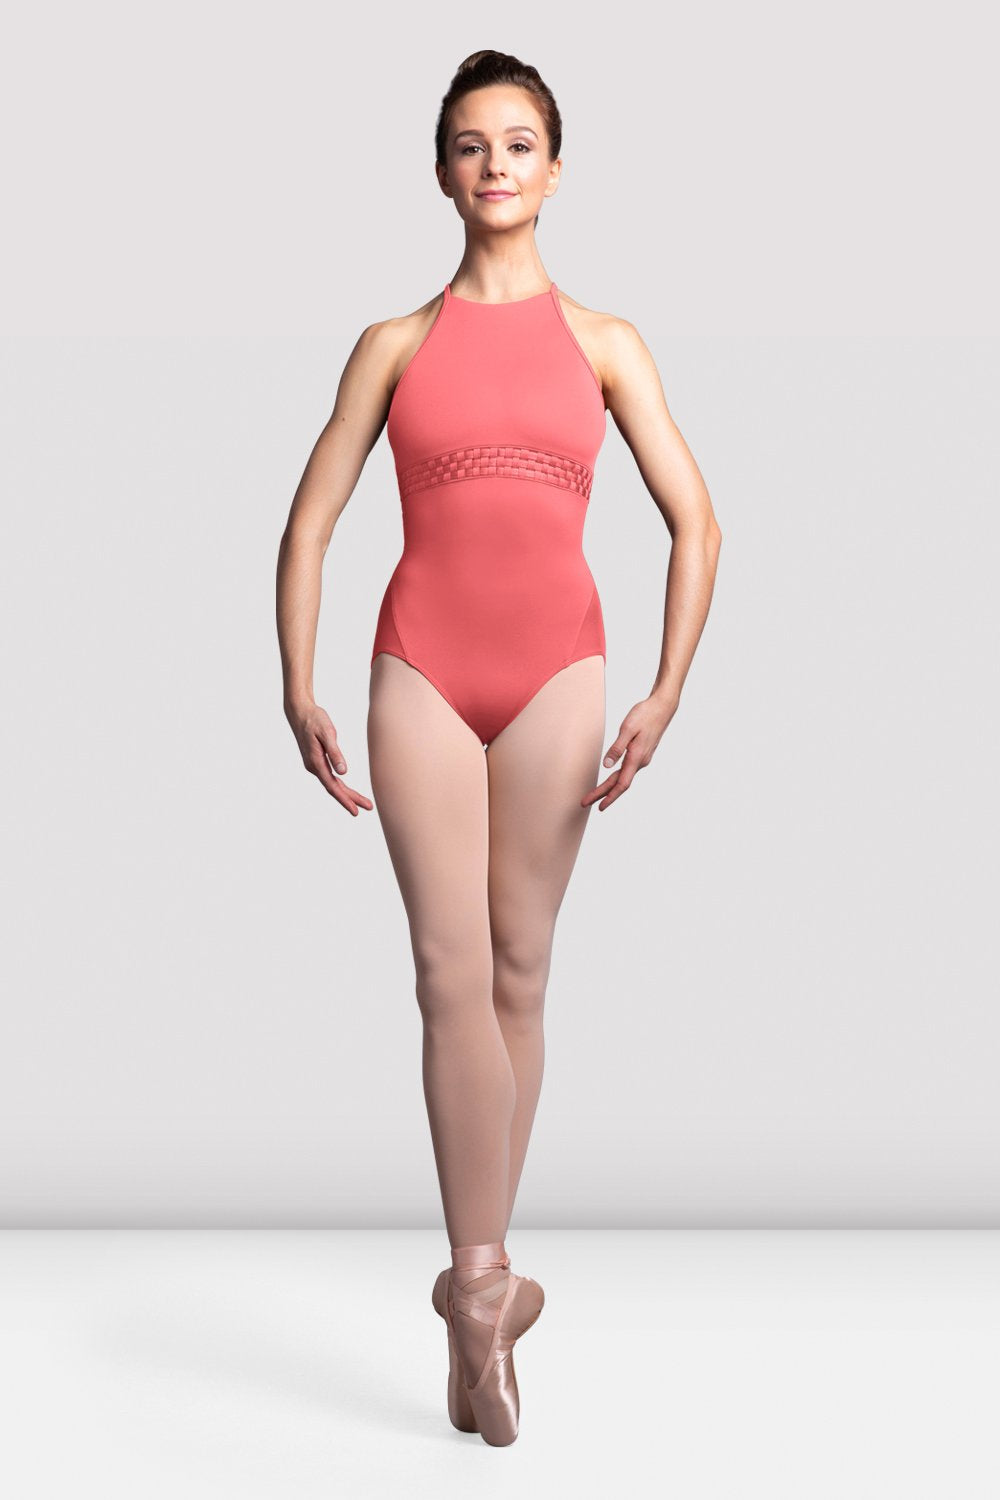 Ladies Cerise Racer Back Camisole Leotard - BLOCH US